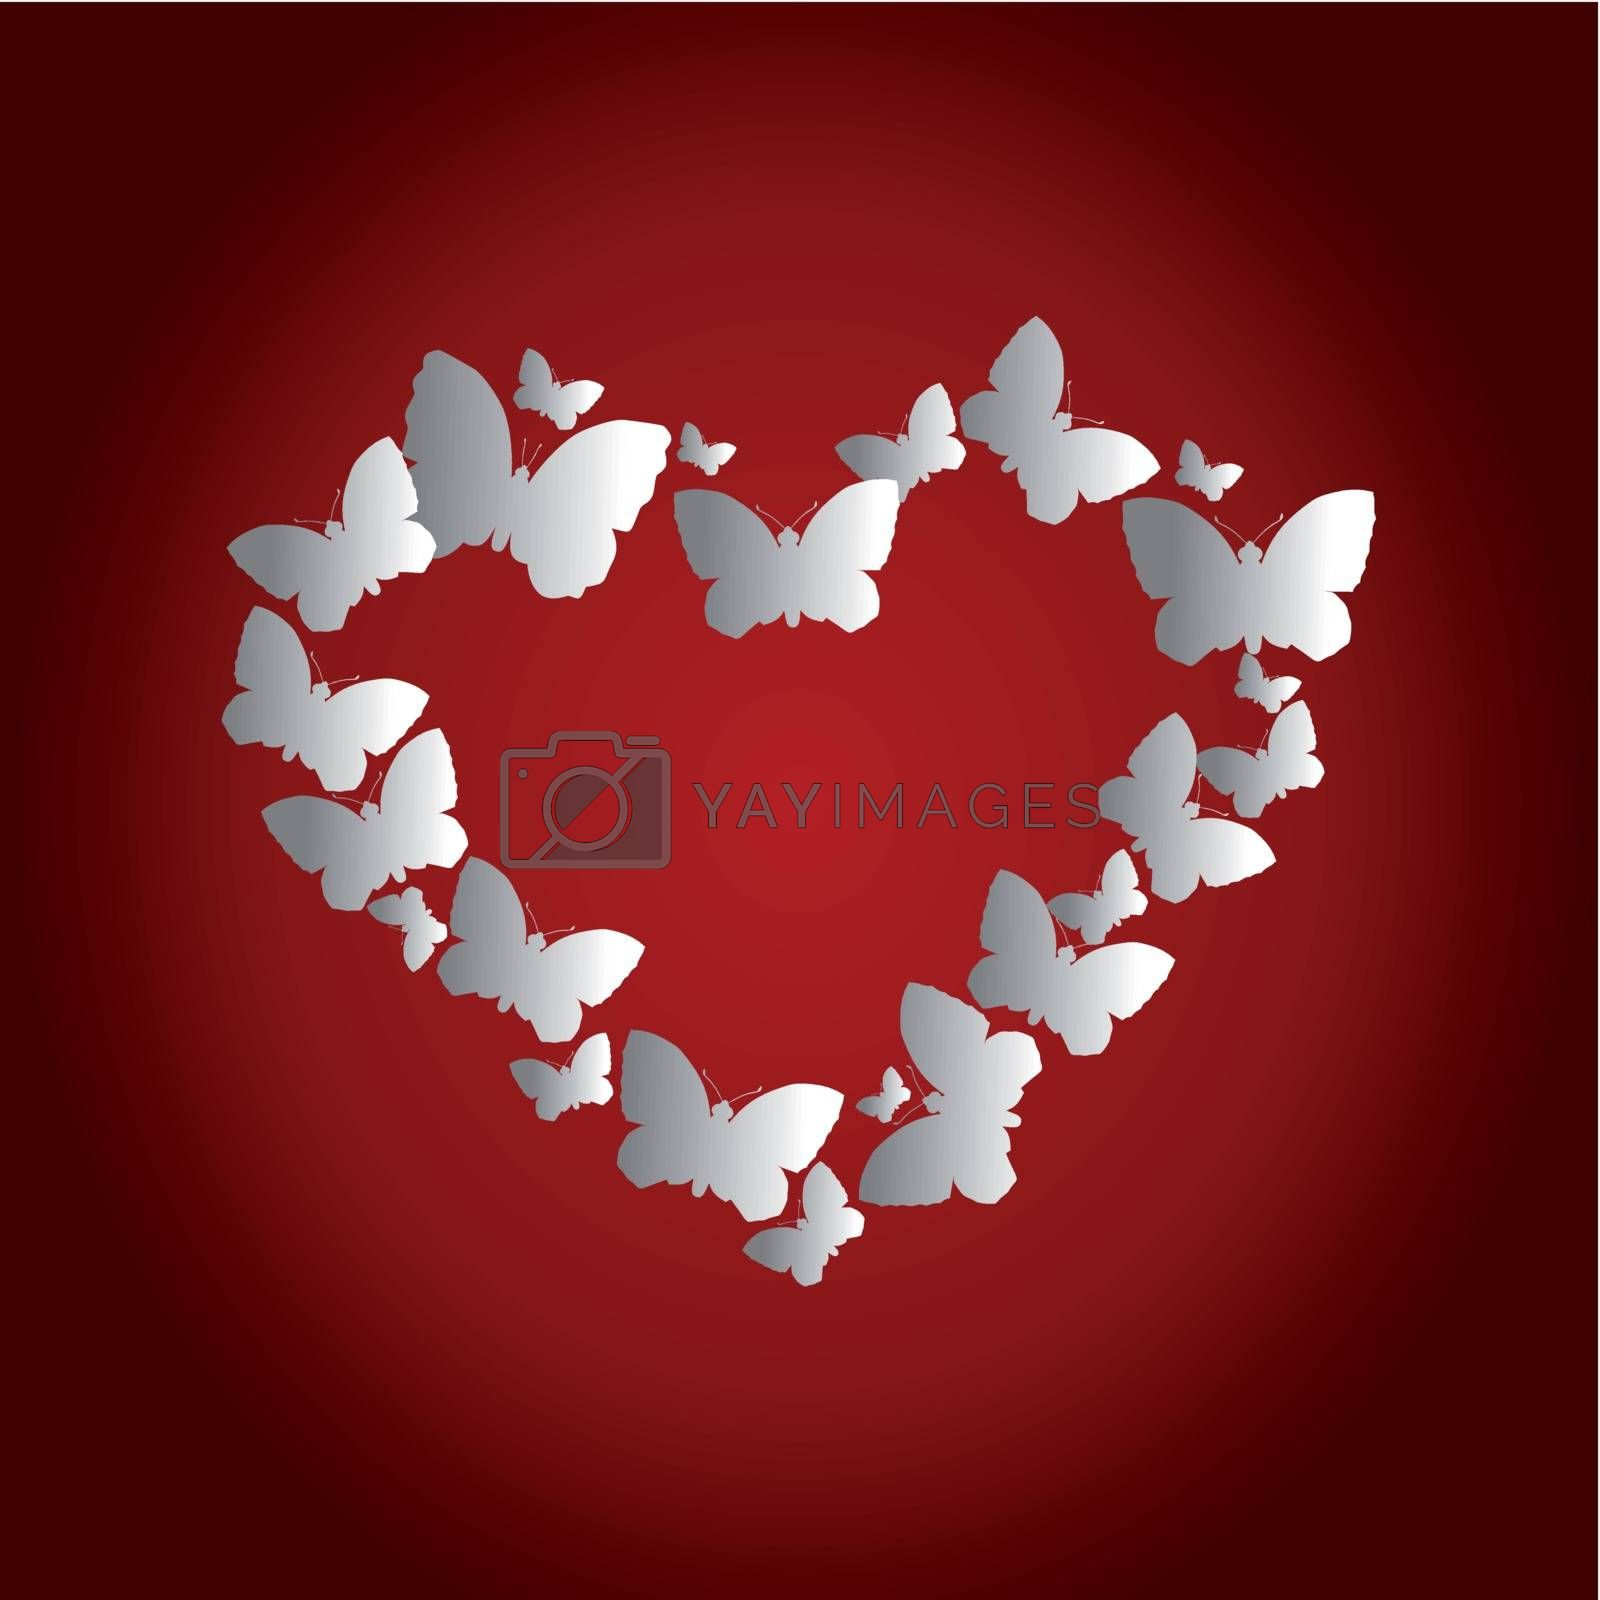 Heart in the form of butterflies on a red background